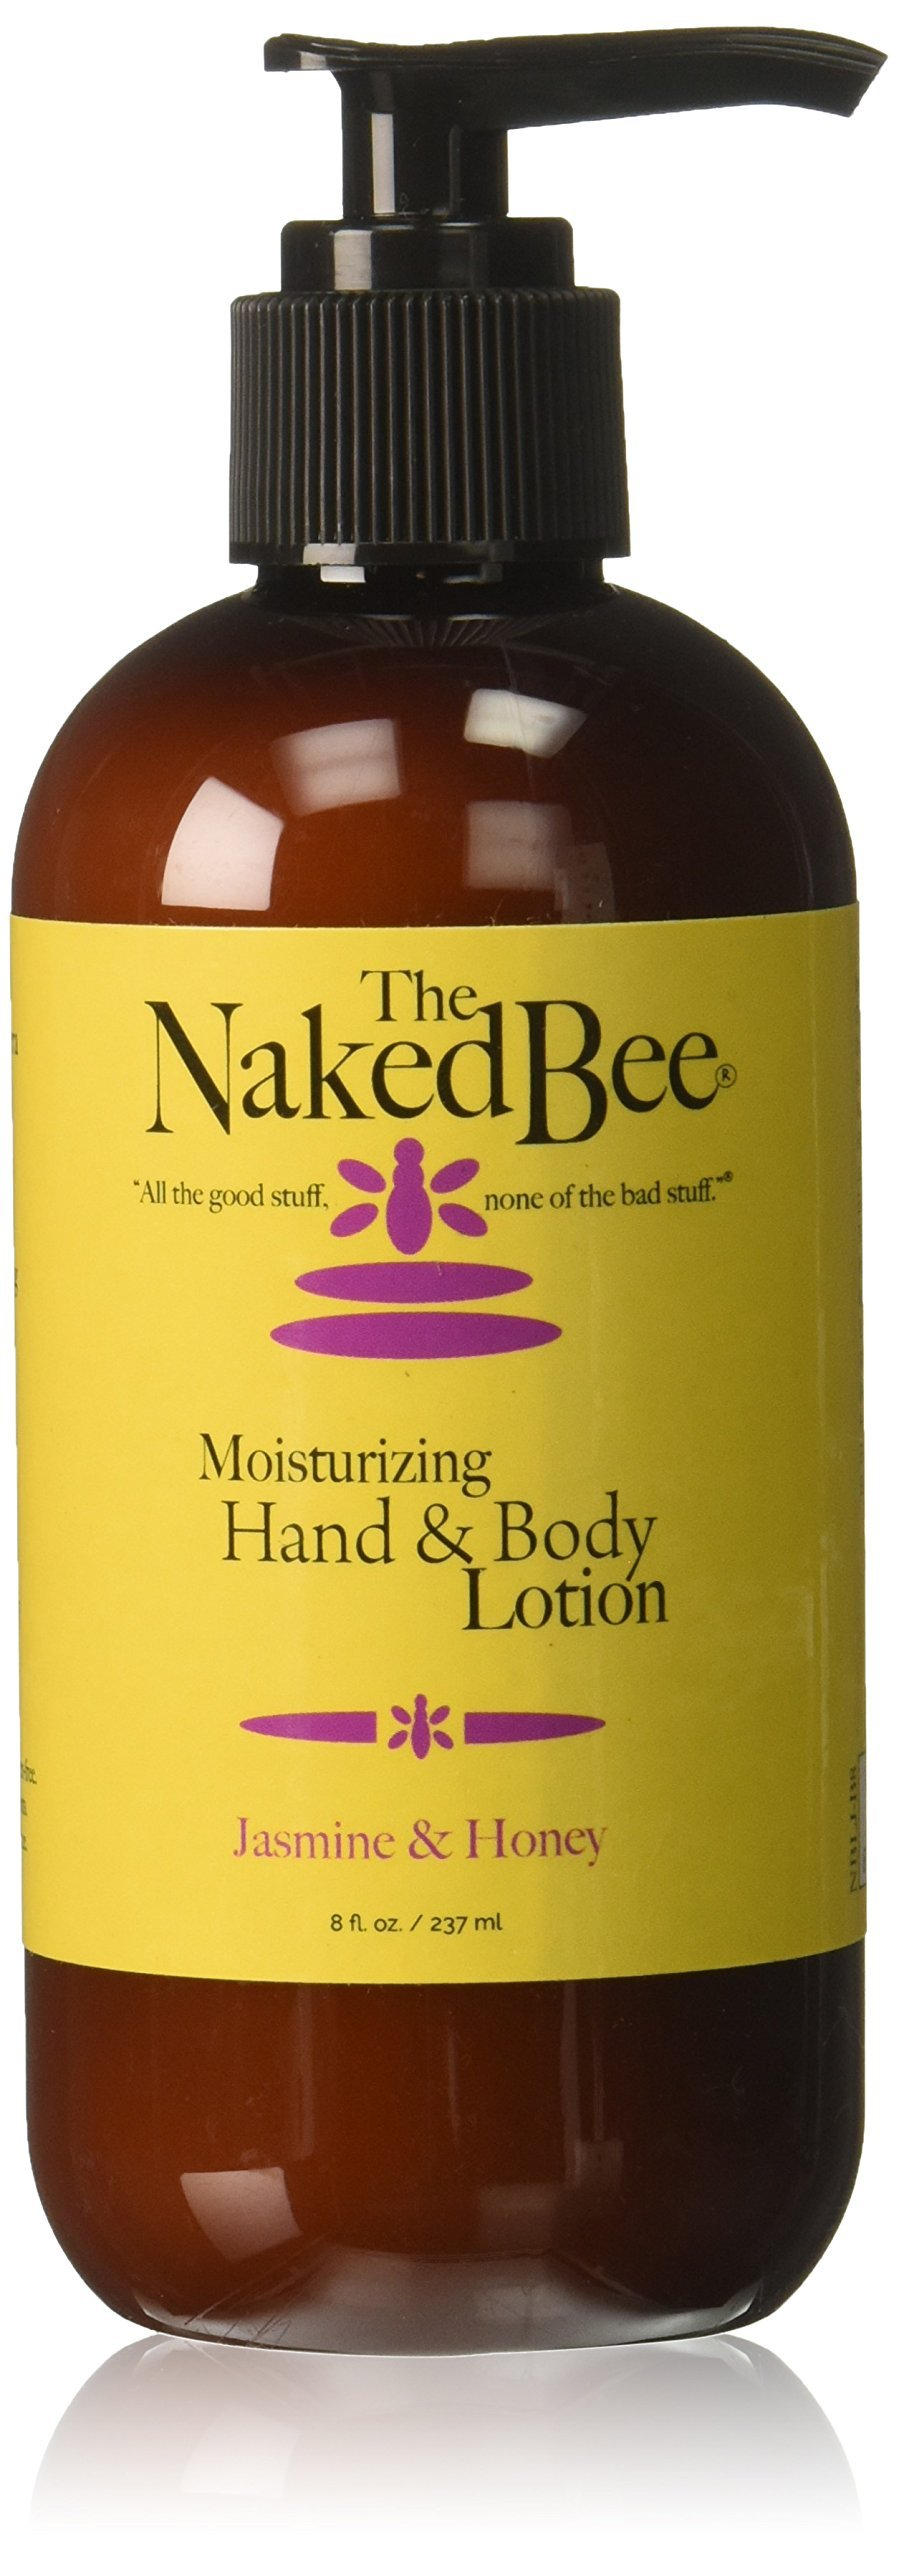 The Naked Bee Lavender & Beeswax Absolute Moisturizing